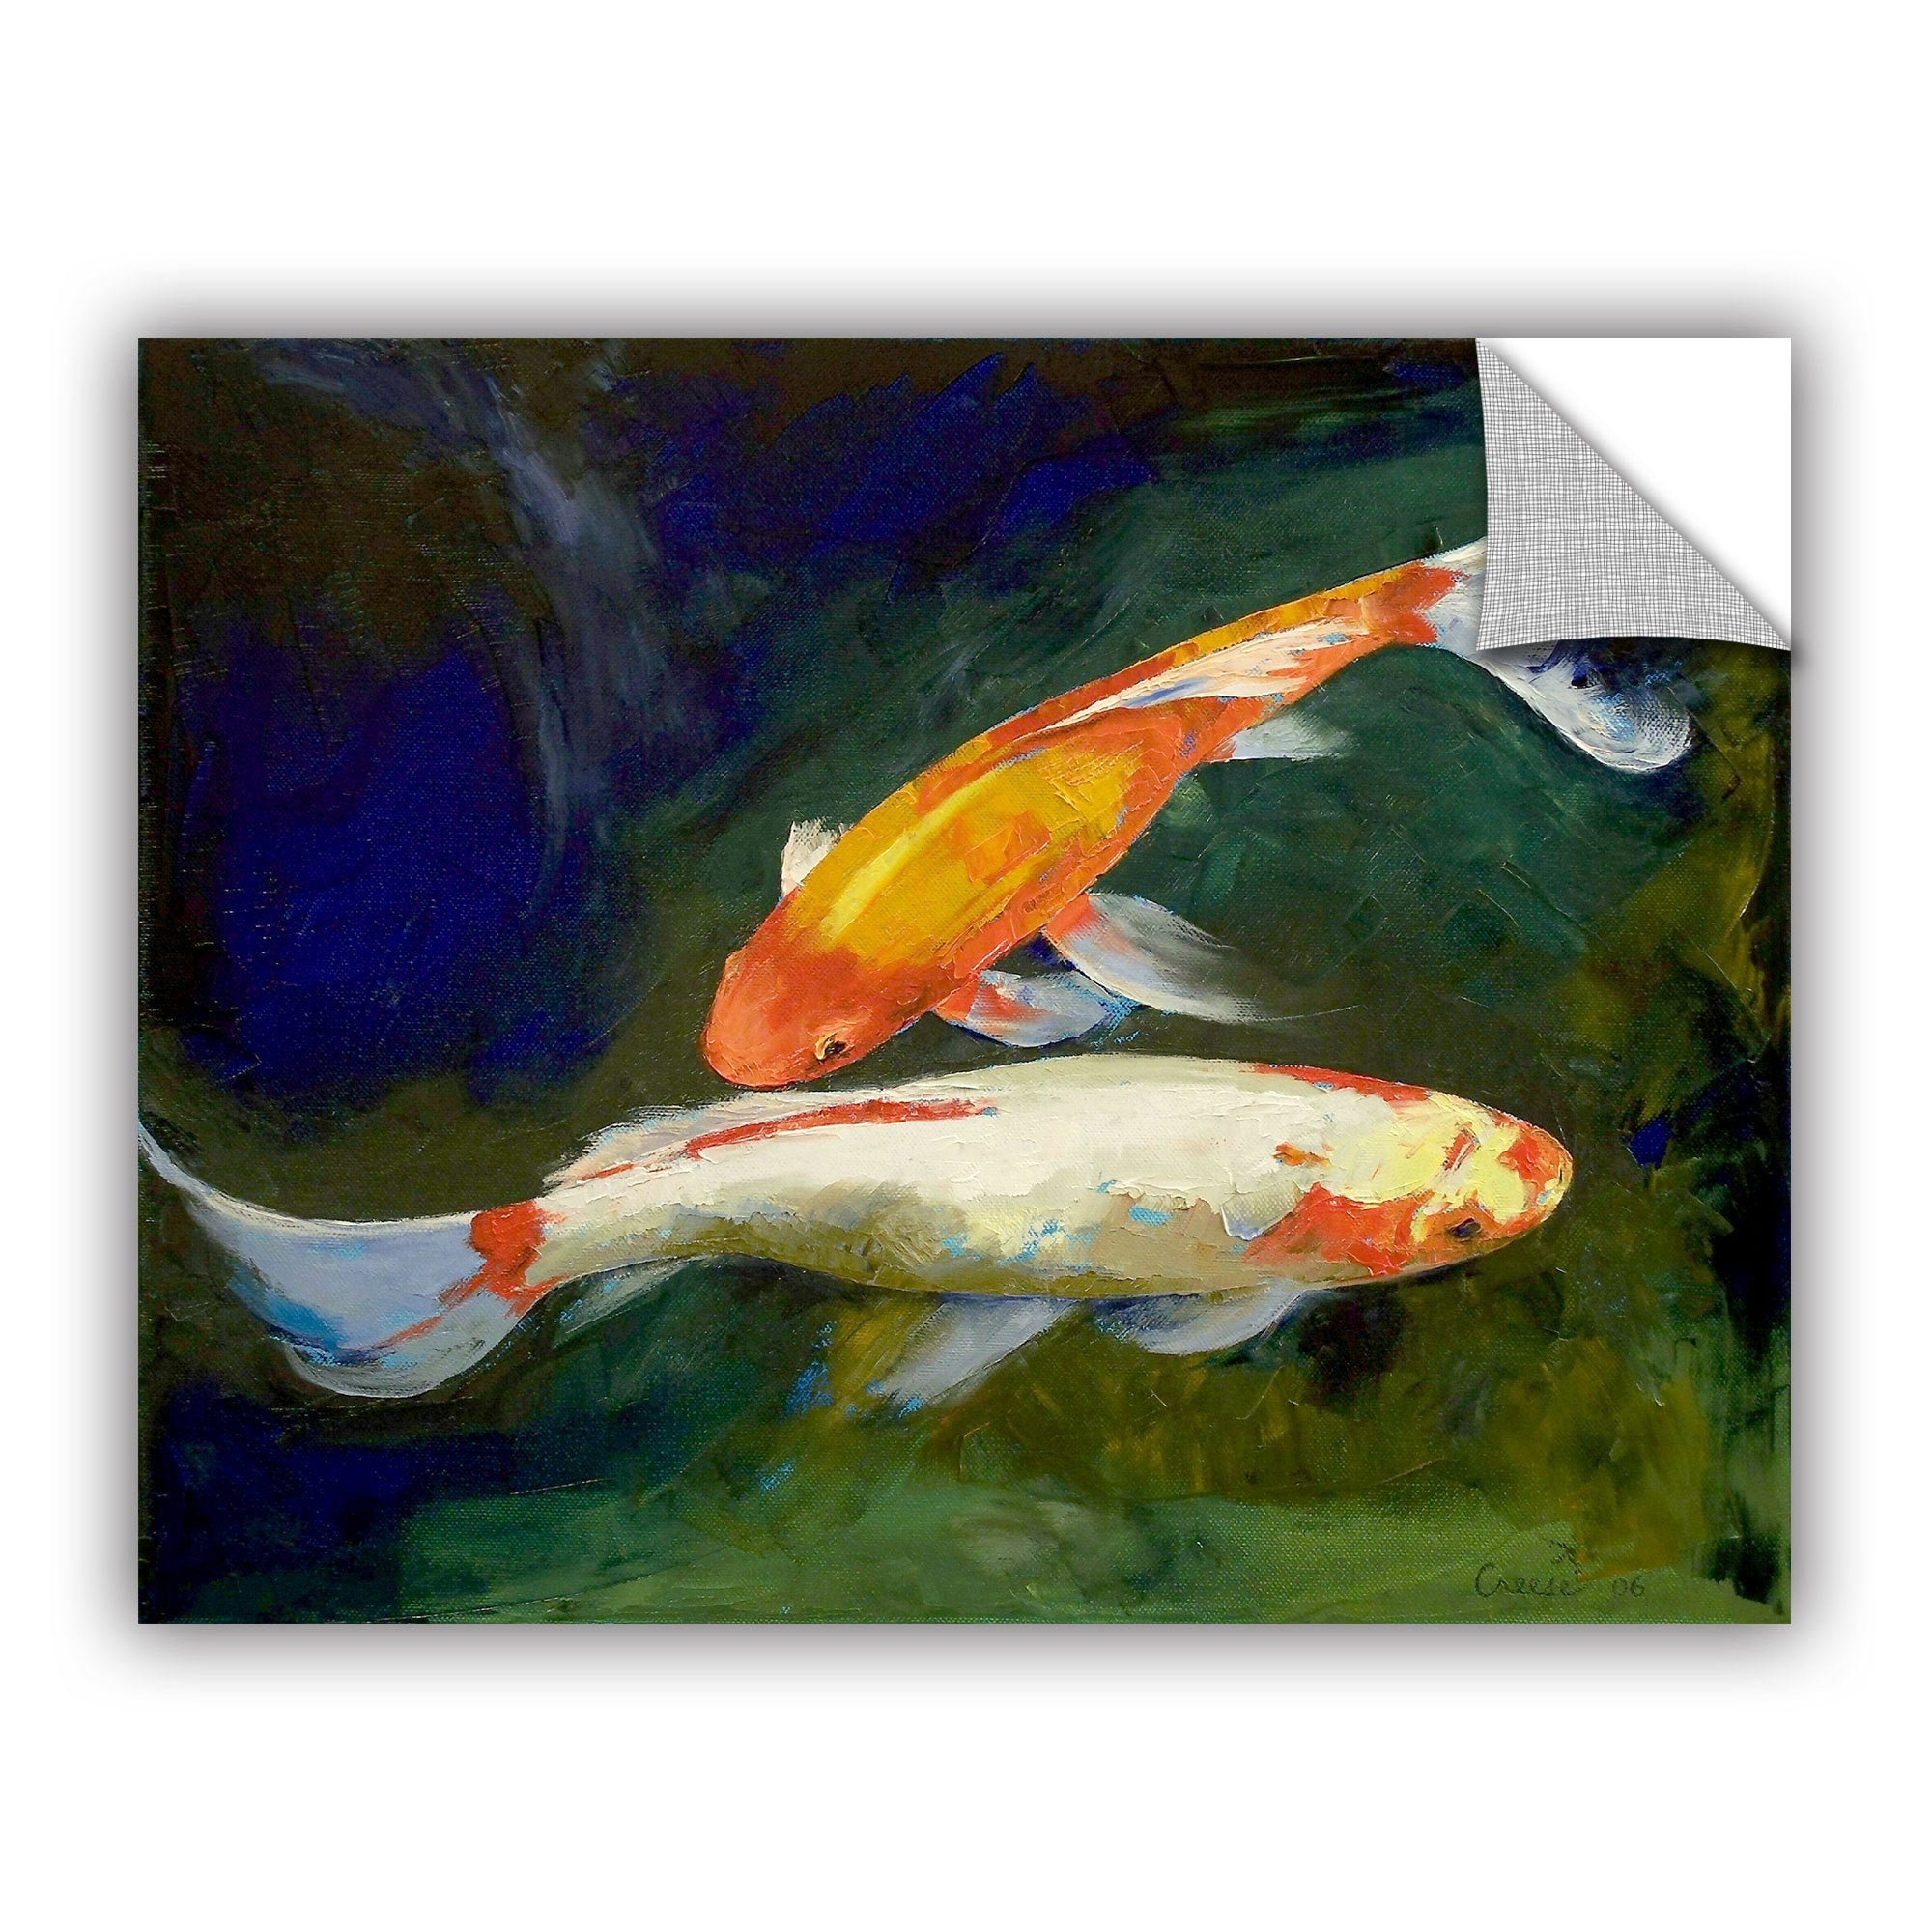 Fish Feng Shui: a selection of sites